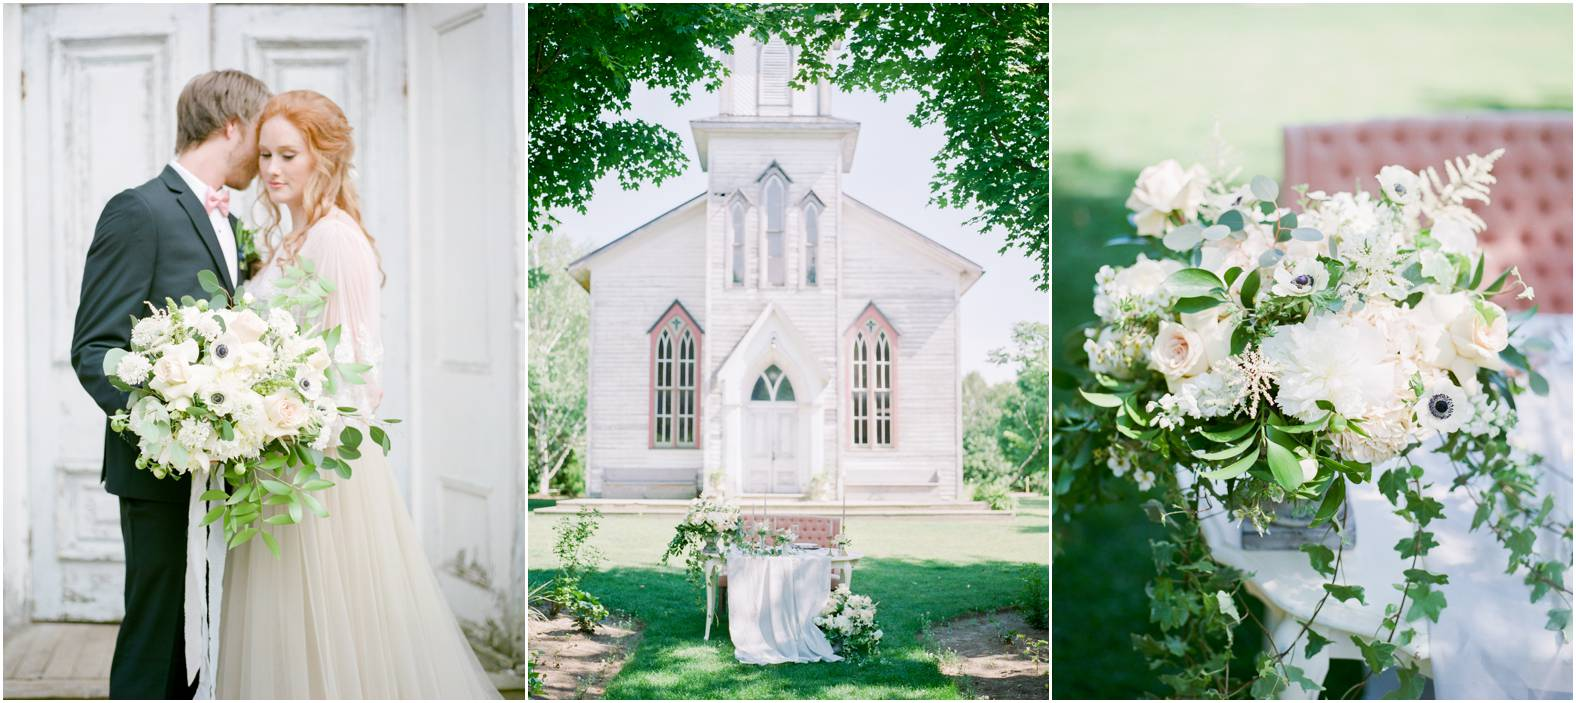 craberry creek gardens venue for special events and intimate garden wedding